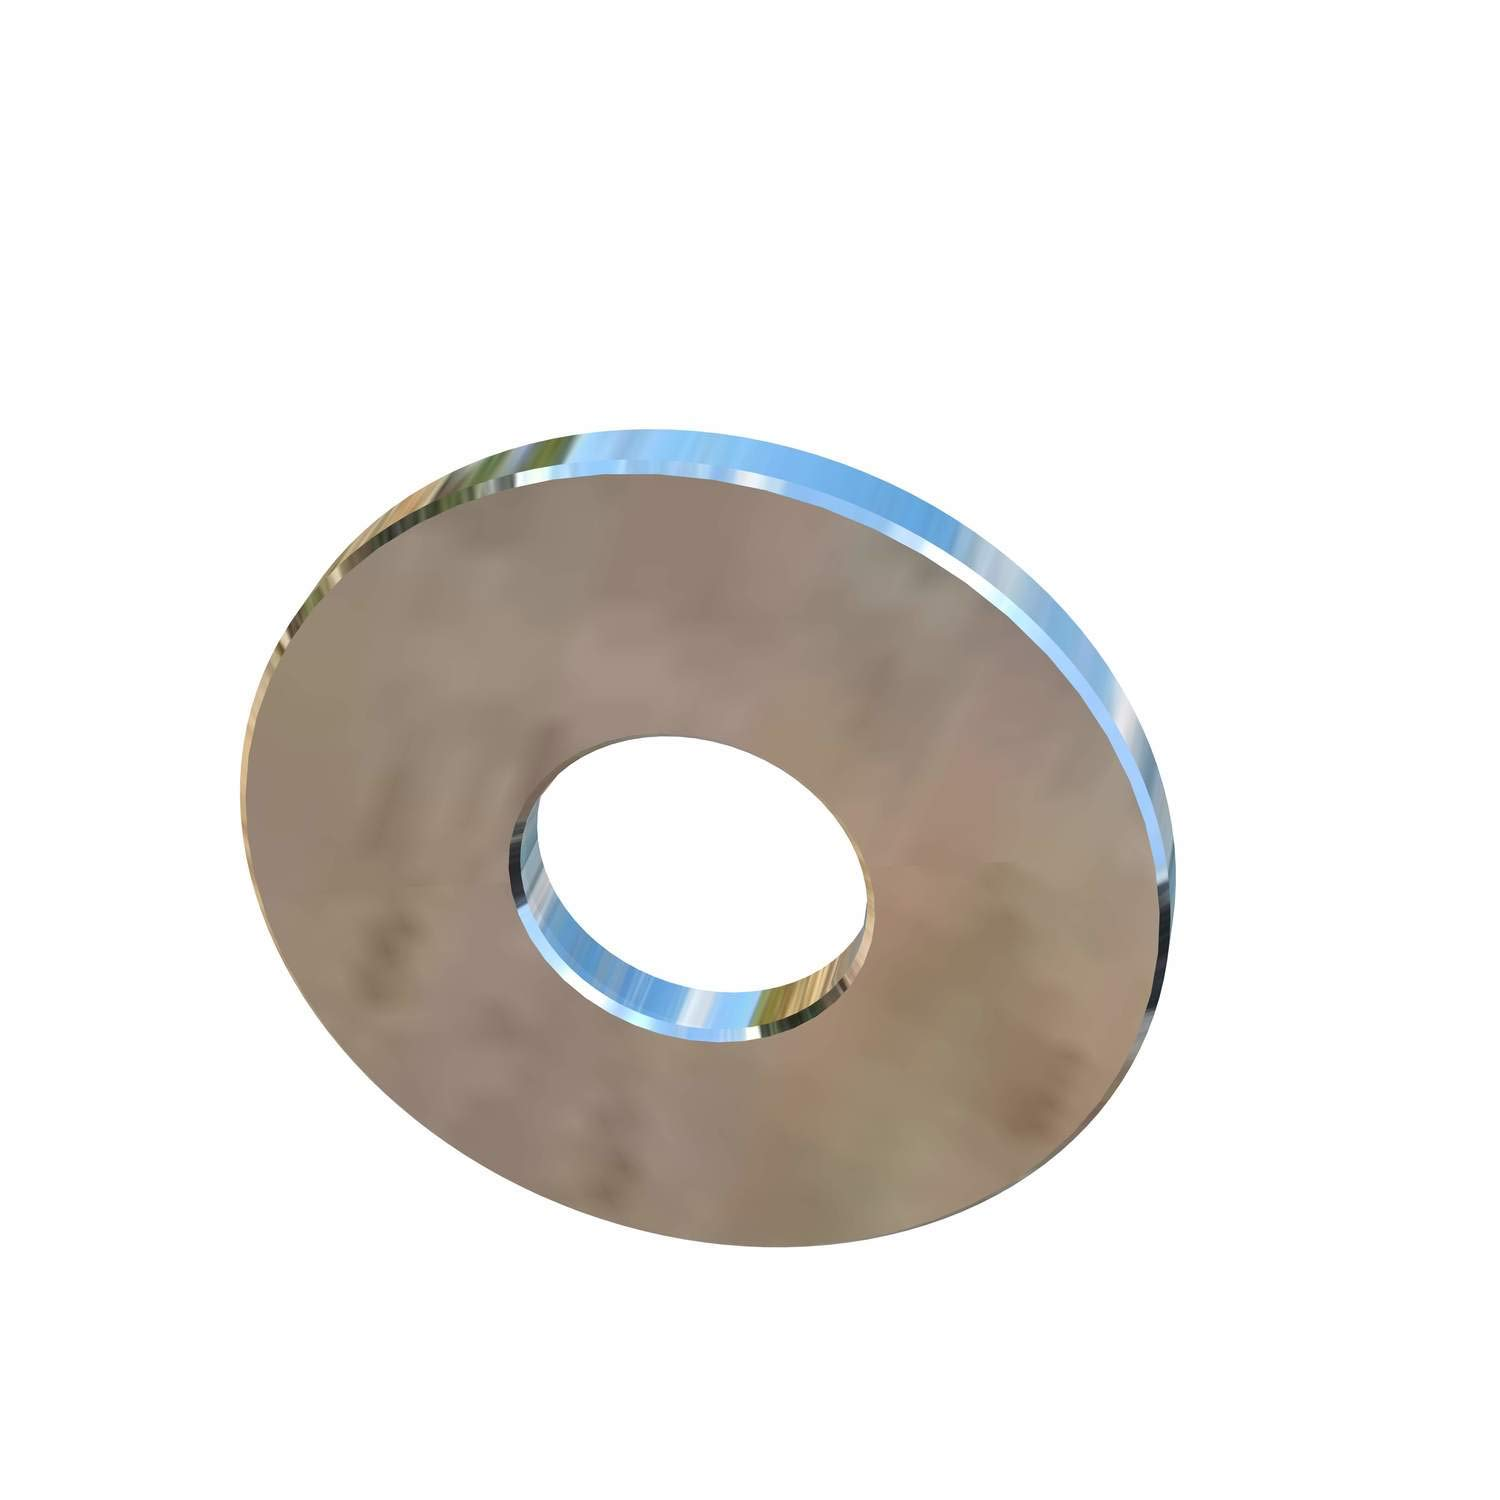 CP Inc Pack of 20 815718001 Grade 2 1//4 Inch Flat Washer 0.065 Thick X 3//4 Inch Outside Diameter Allied Titanium 0046908,